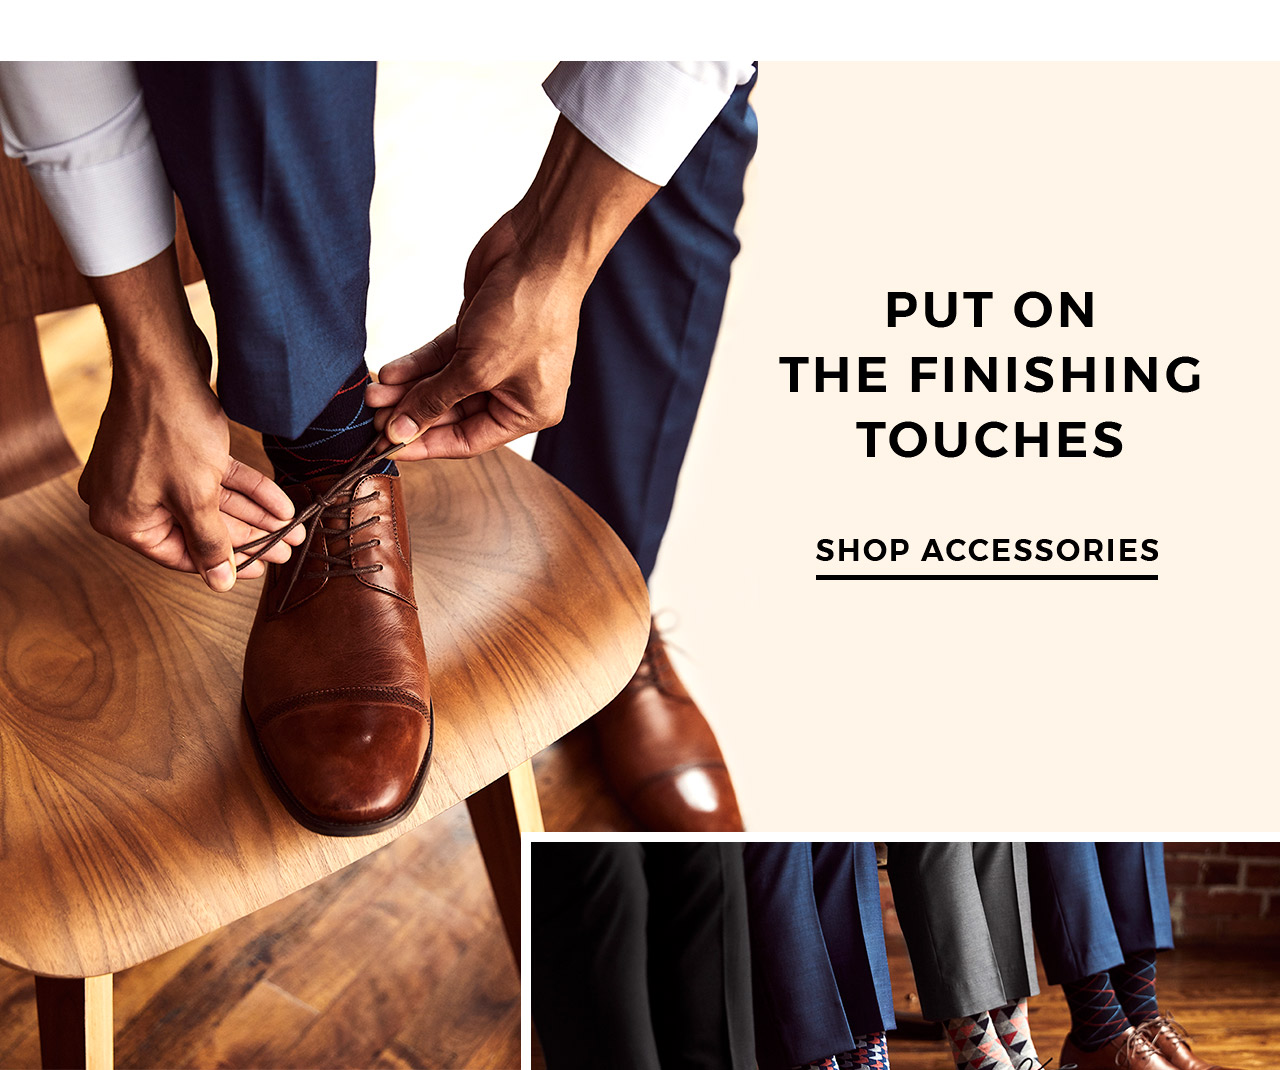 Put the finishing touches. Shop accessories